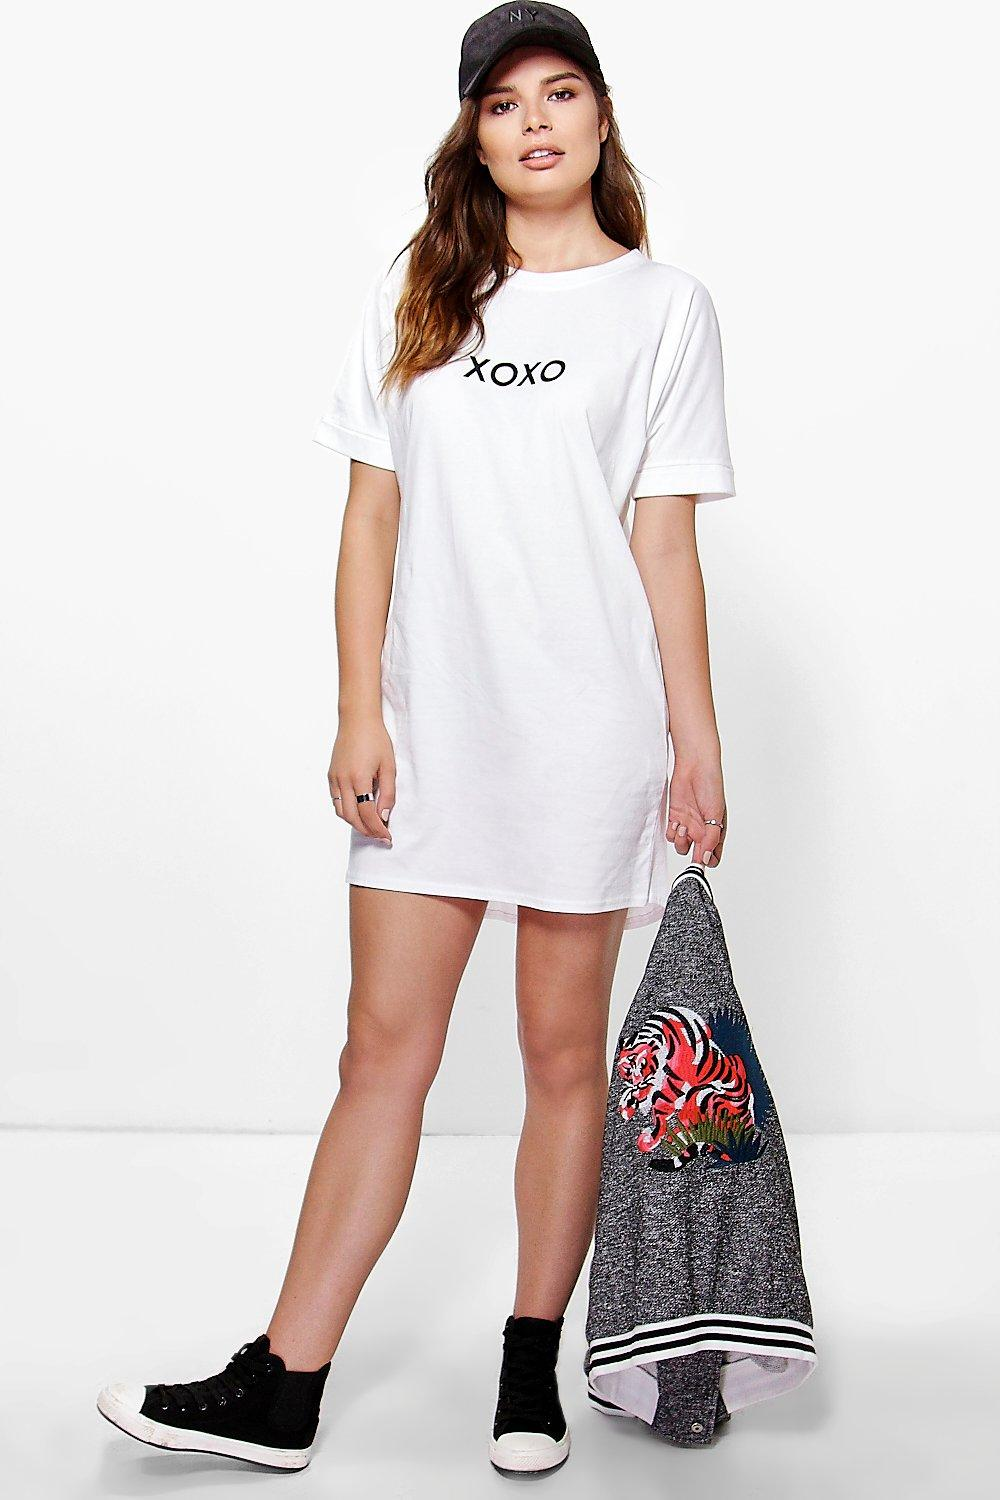 Blair XOXO Slogan T-Shirt Dress